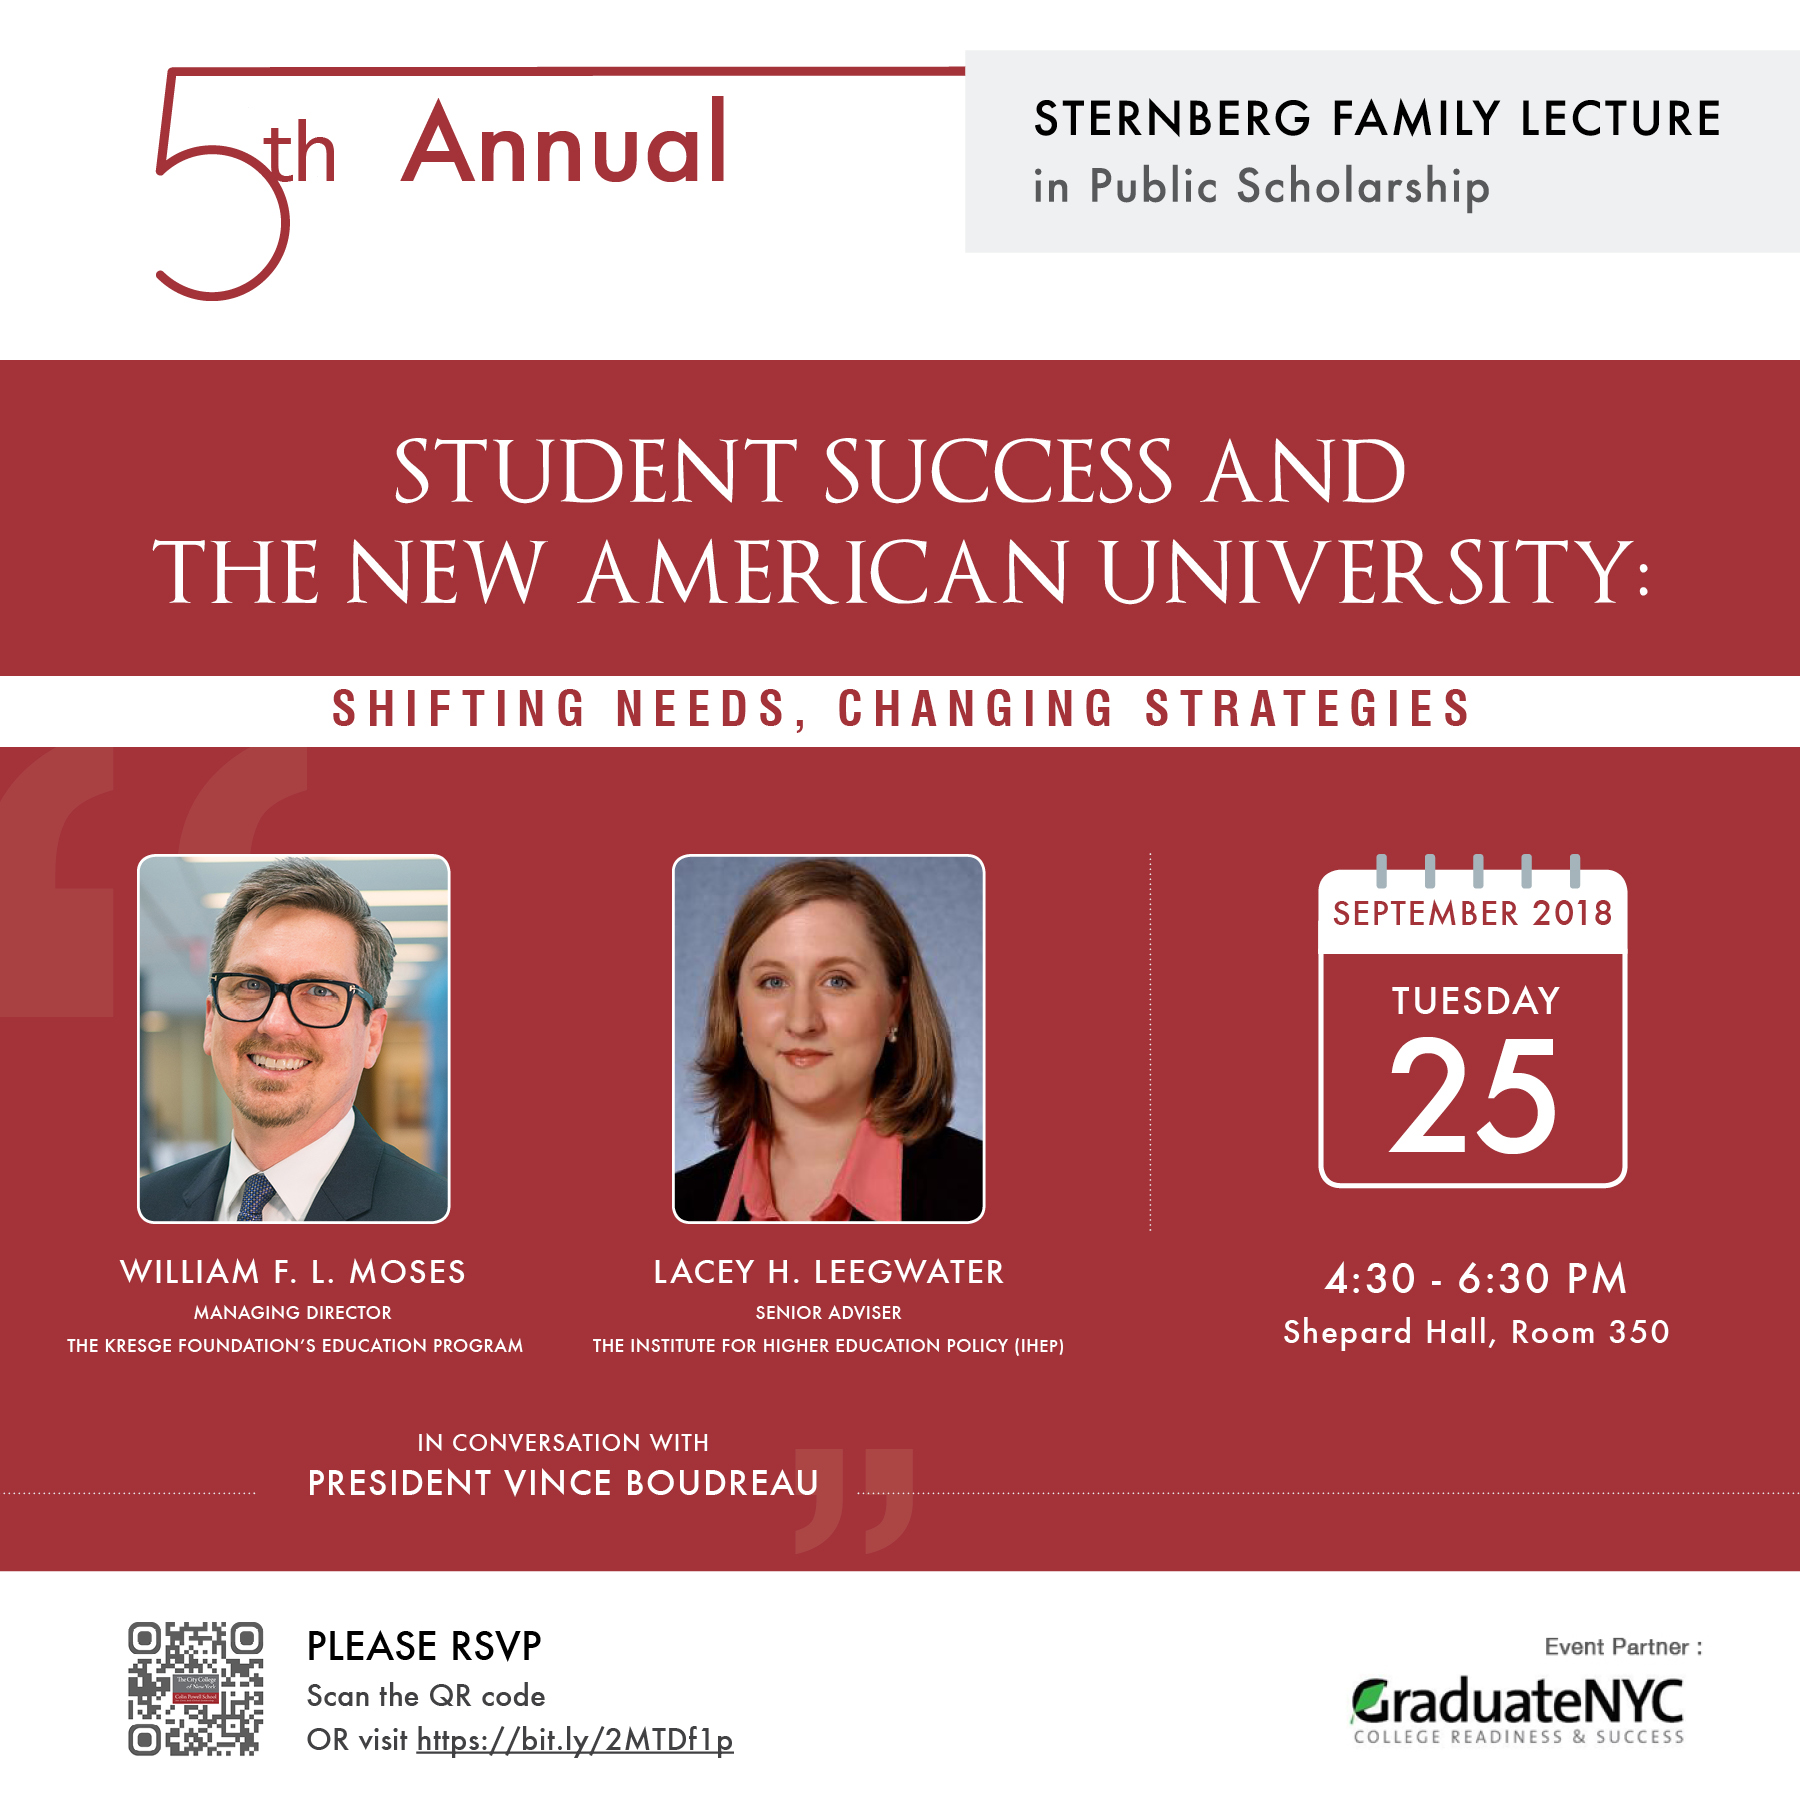 5th Annual Sternberg Lecture